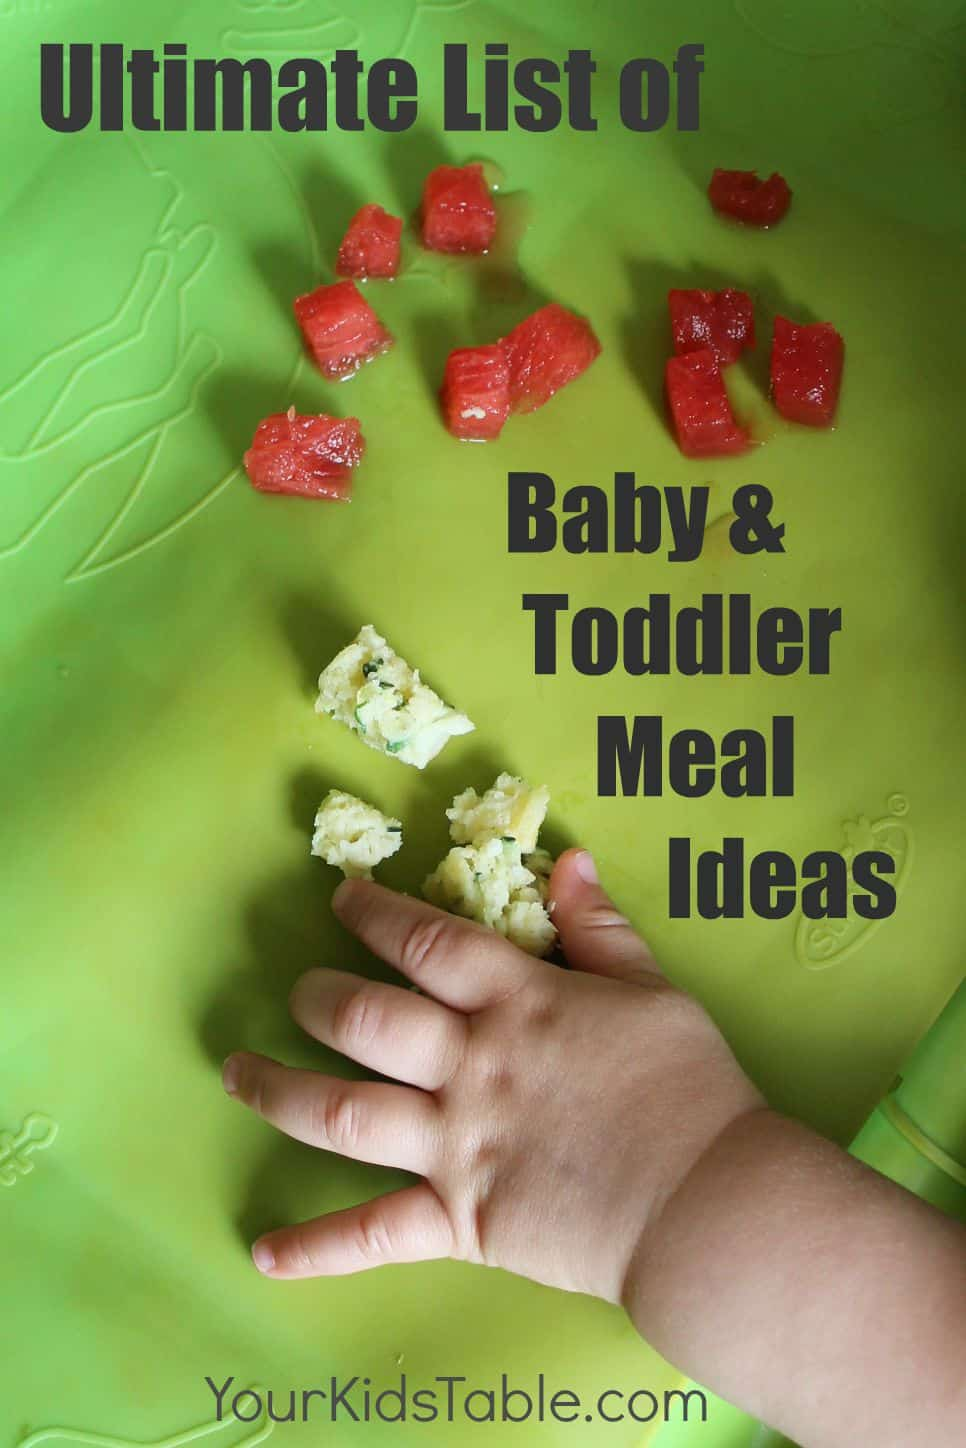 The ultimate list of babytoddler meal ideas your kids table huge list of toddler and baby meal ideas perfect for baby led weaning transitioning forumfinder Gallery